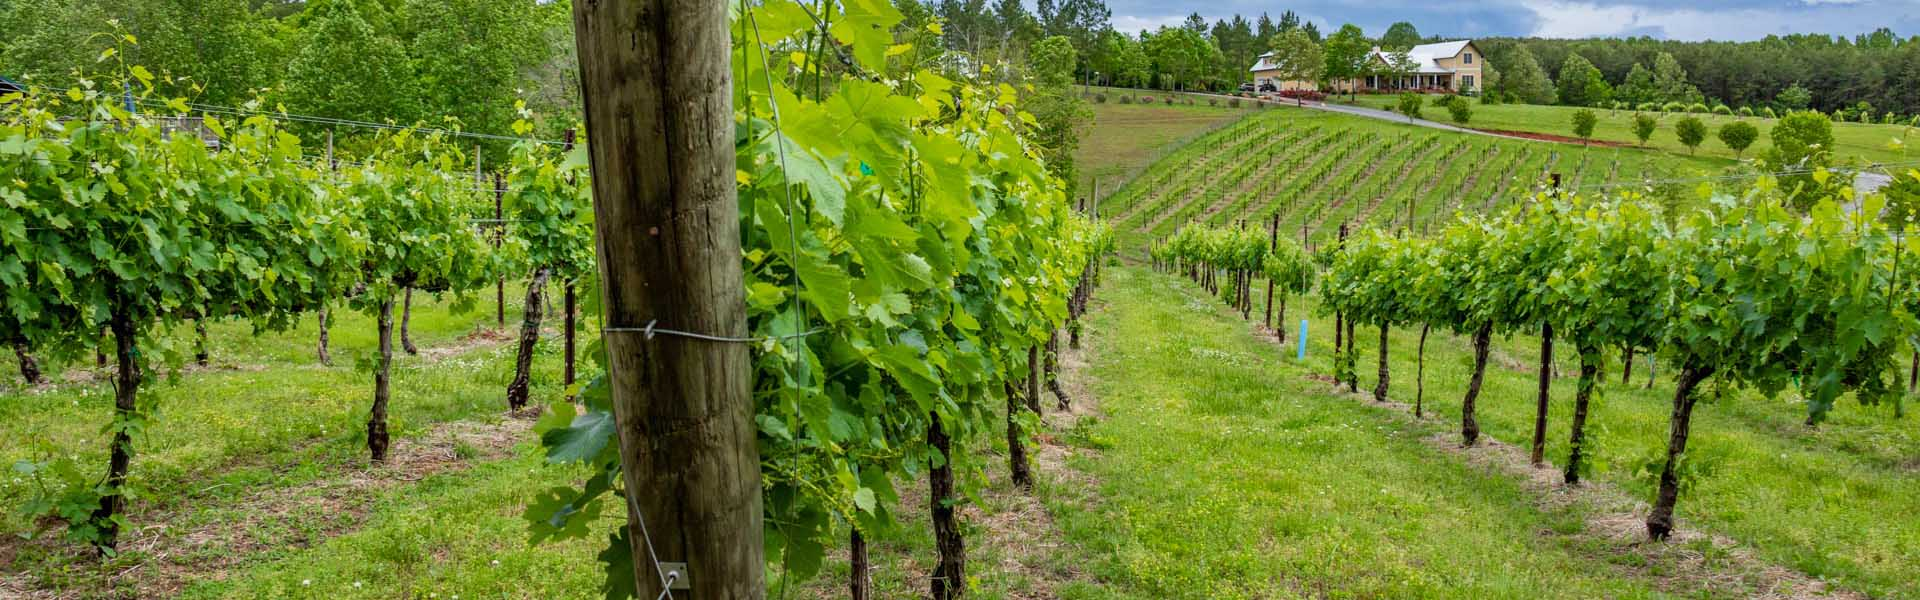 Tryon Foothills Winery